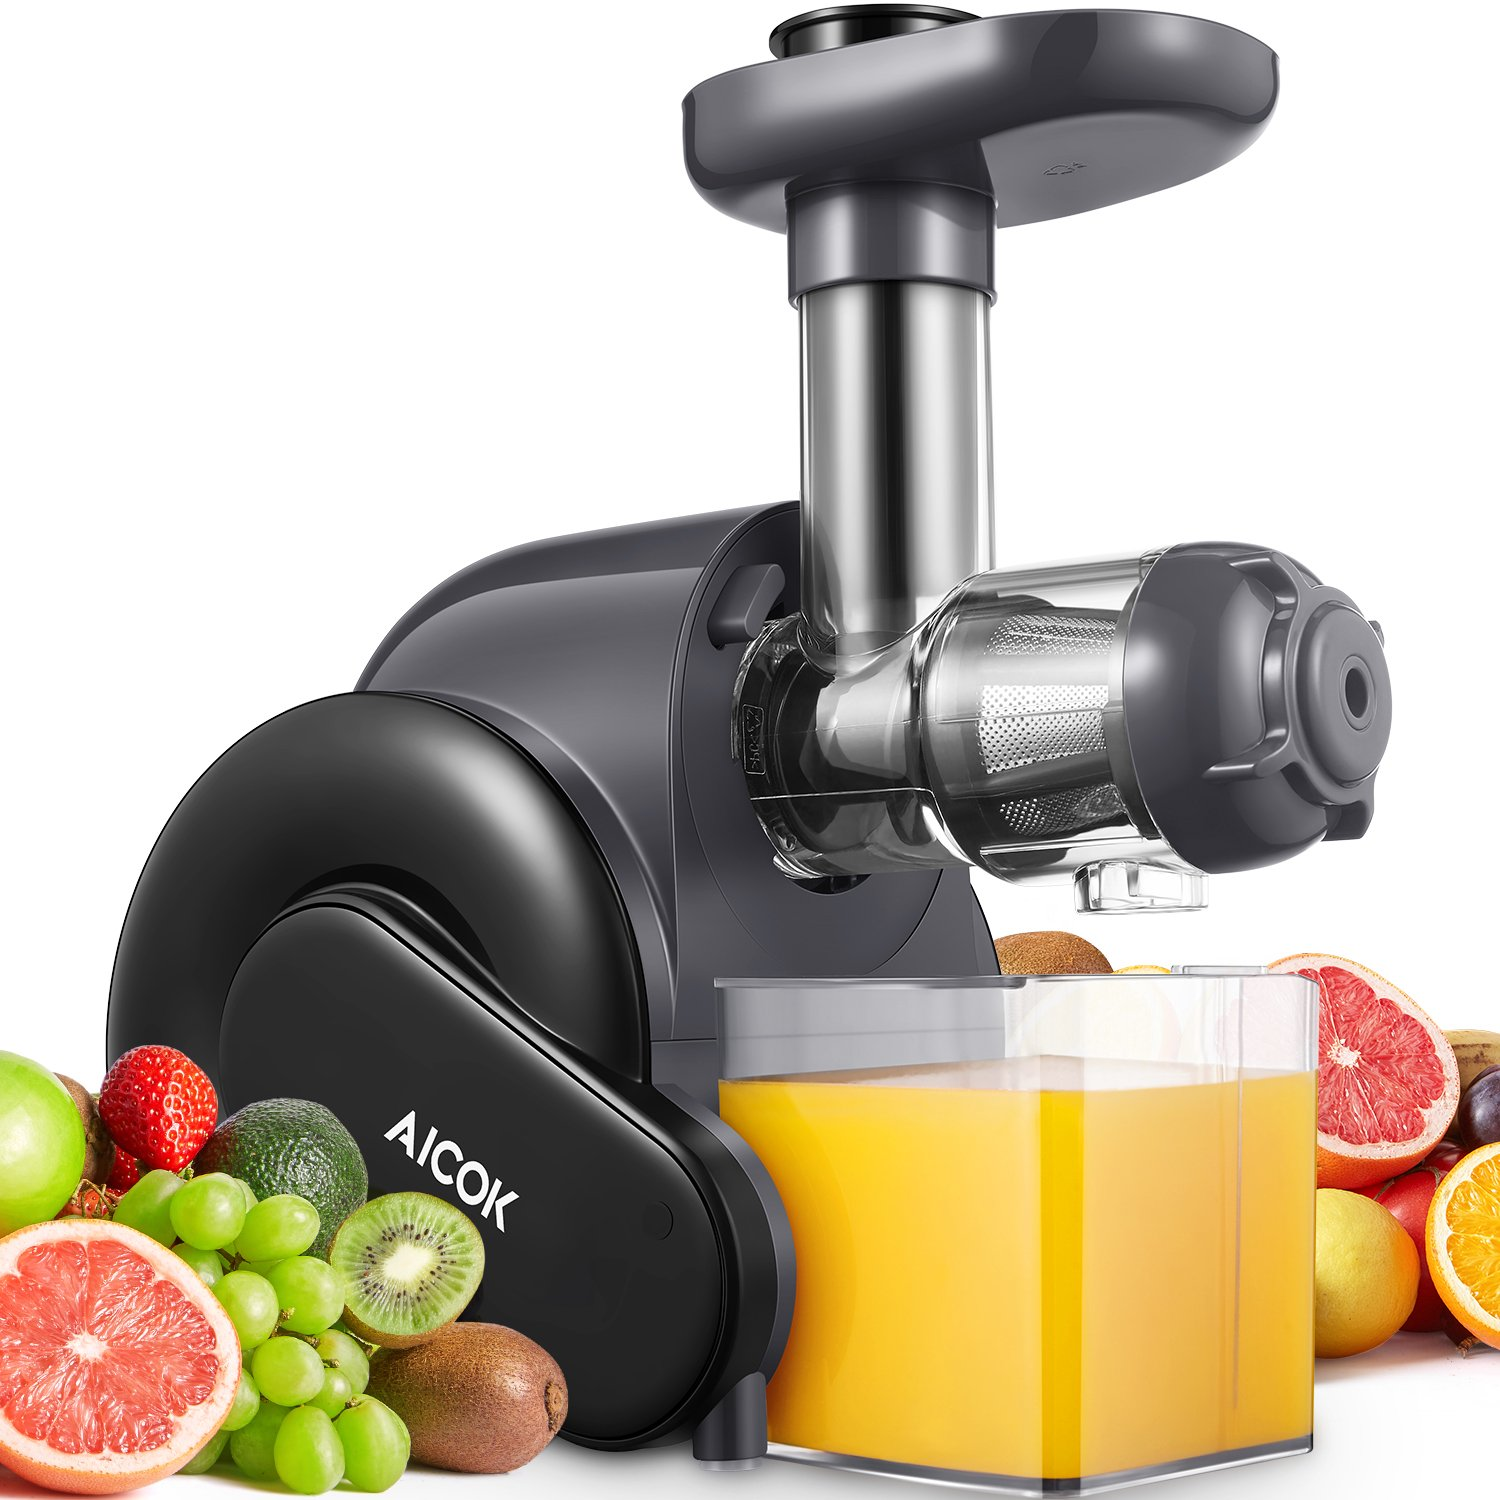 Juicer, Aicok Slow Masticating Juicer with Reverse Function, Juice Machine with Recipe, Cold Press Juicer with Quiet Motor, Juice Jug and Brush for High Nutrient Juice, Easy to Clean, BPA Free by AICOK (Image #1)